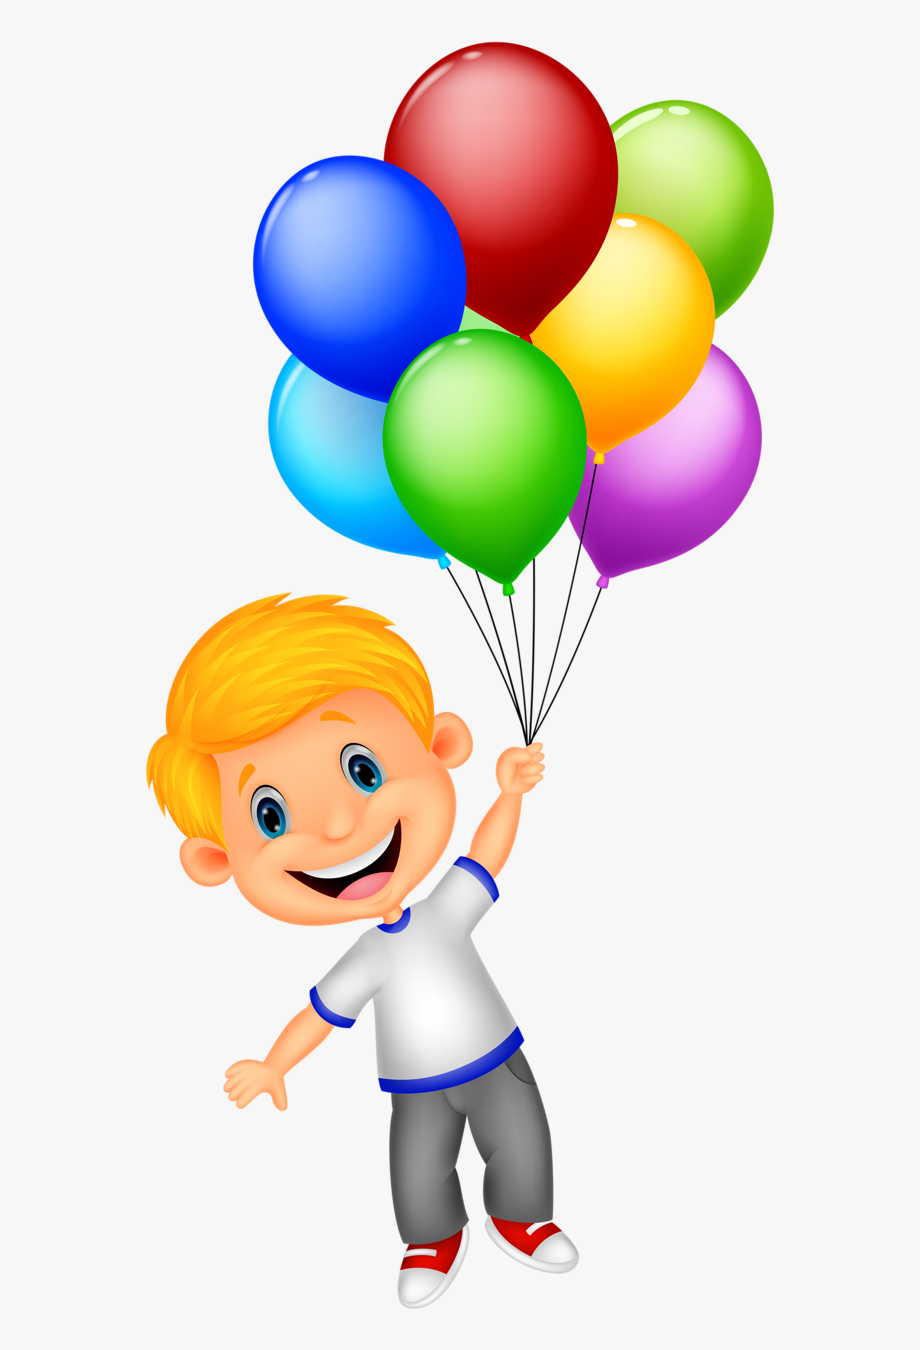 Animated clipart balloons free jpg transparent 1 - Girl Holding Balloons Clipart , Transparent Cartoon, Free ... jpg transparent